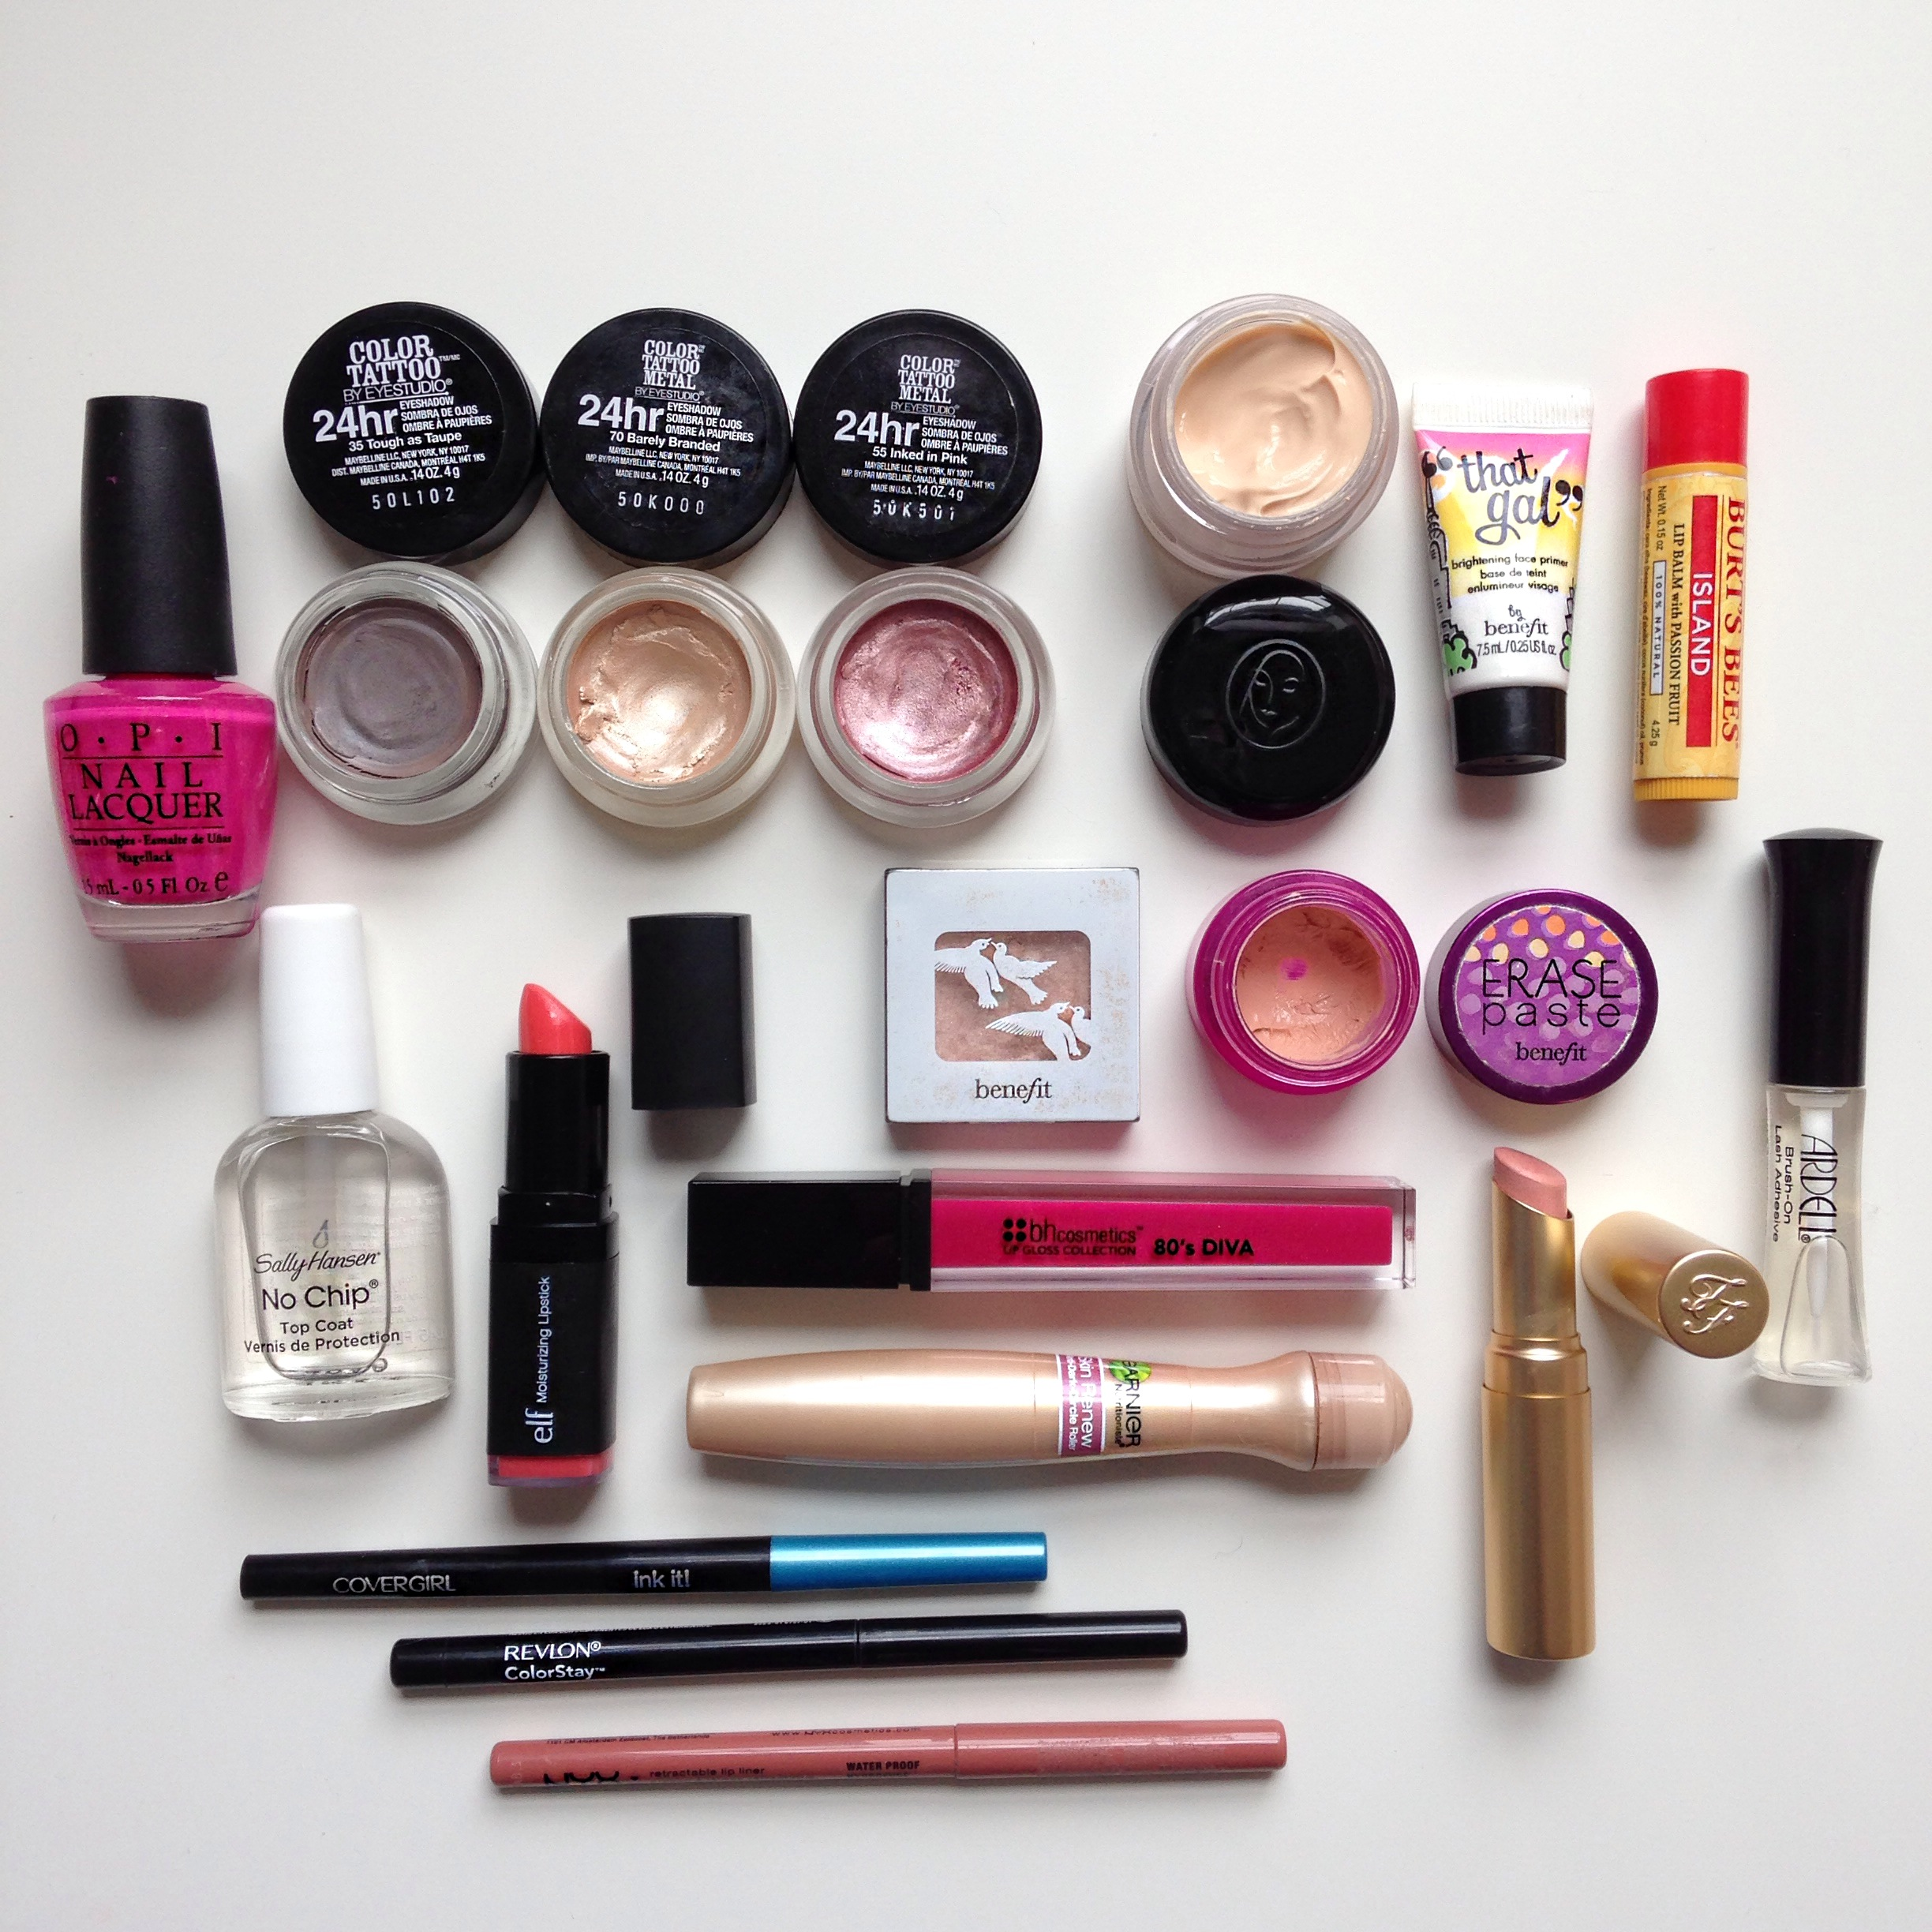 Spring Cleaning Makeup 2015